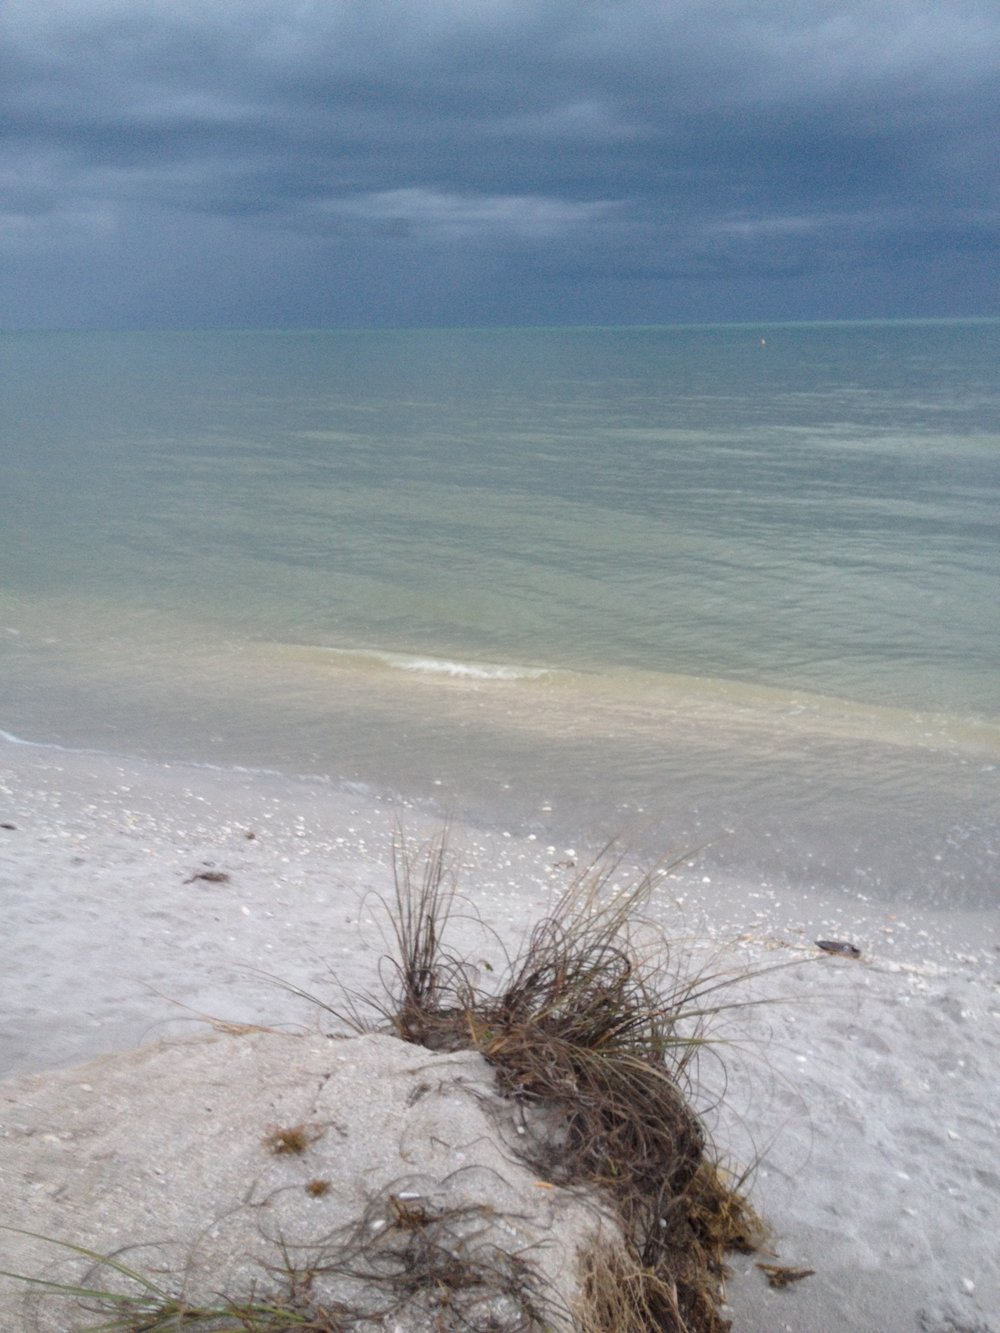 Sanibel sand and surf! My view as I sit typing. No, I am not on the beach...really.